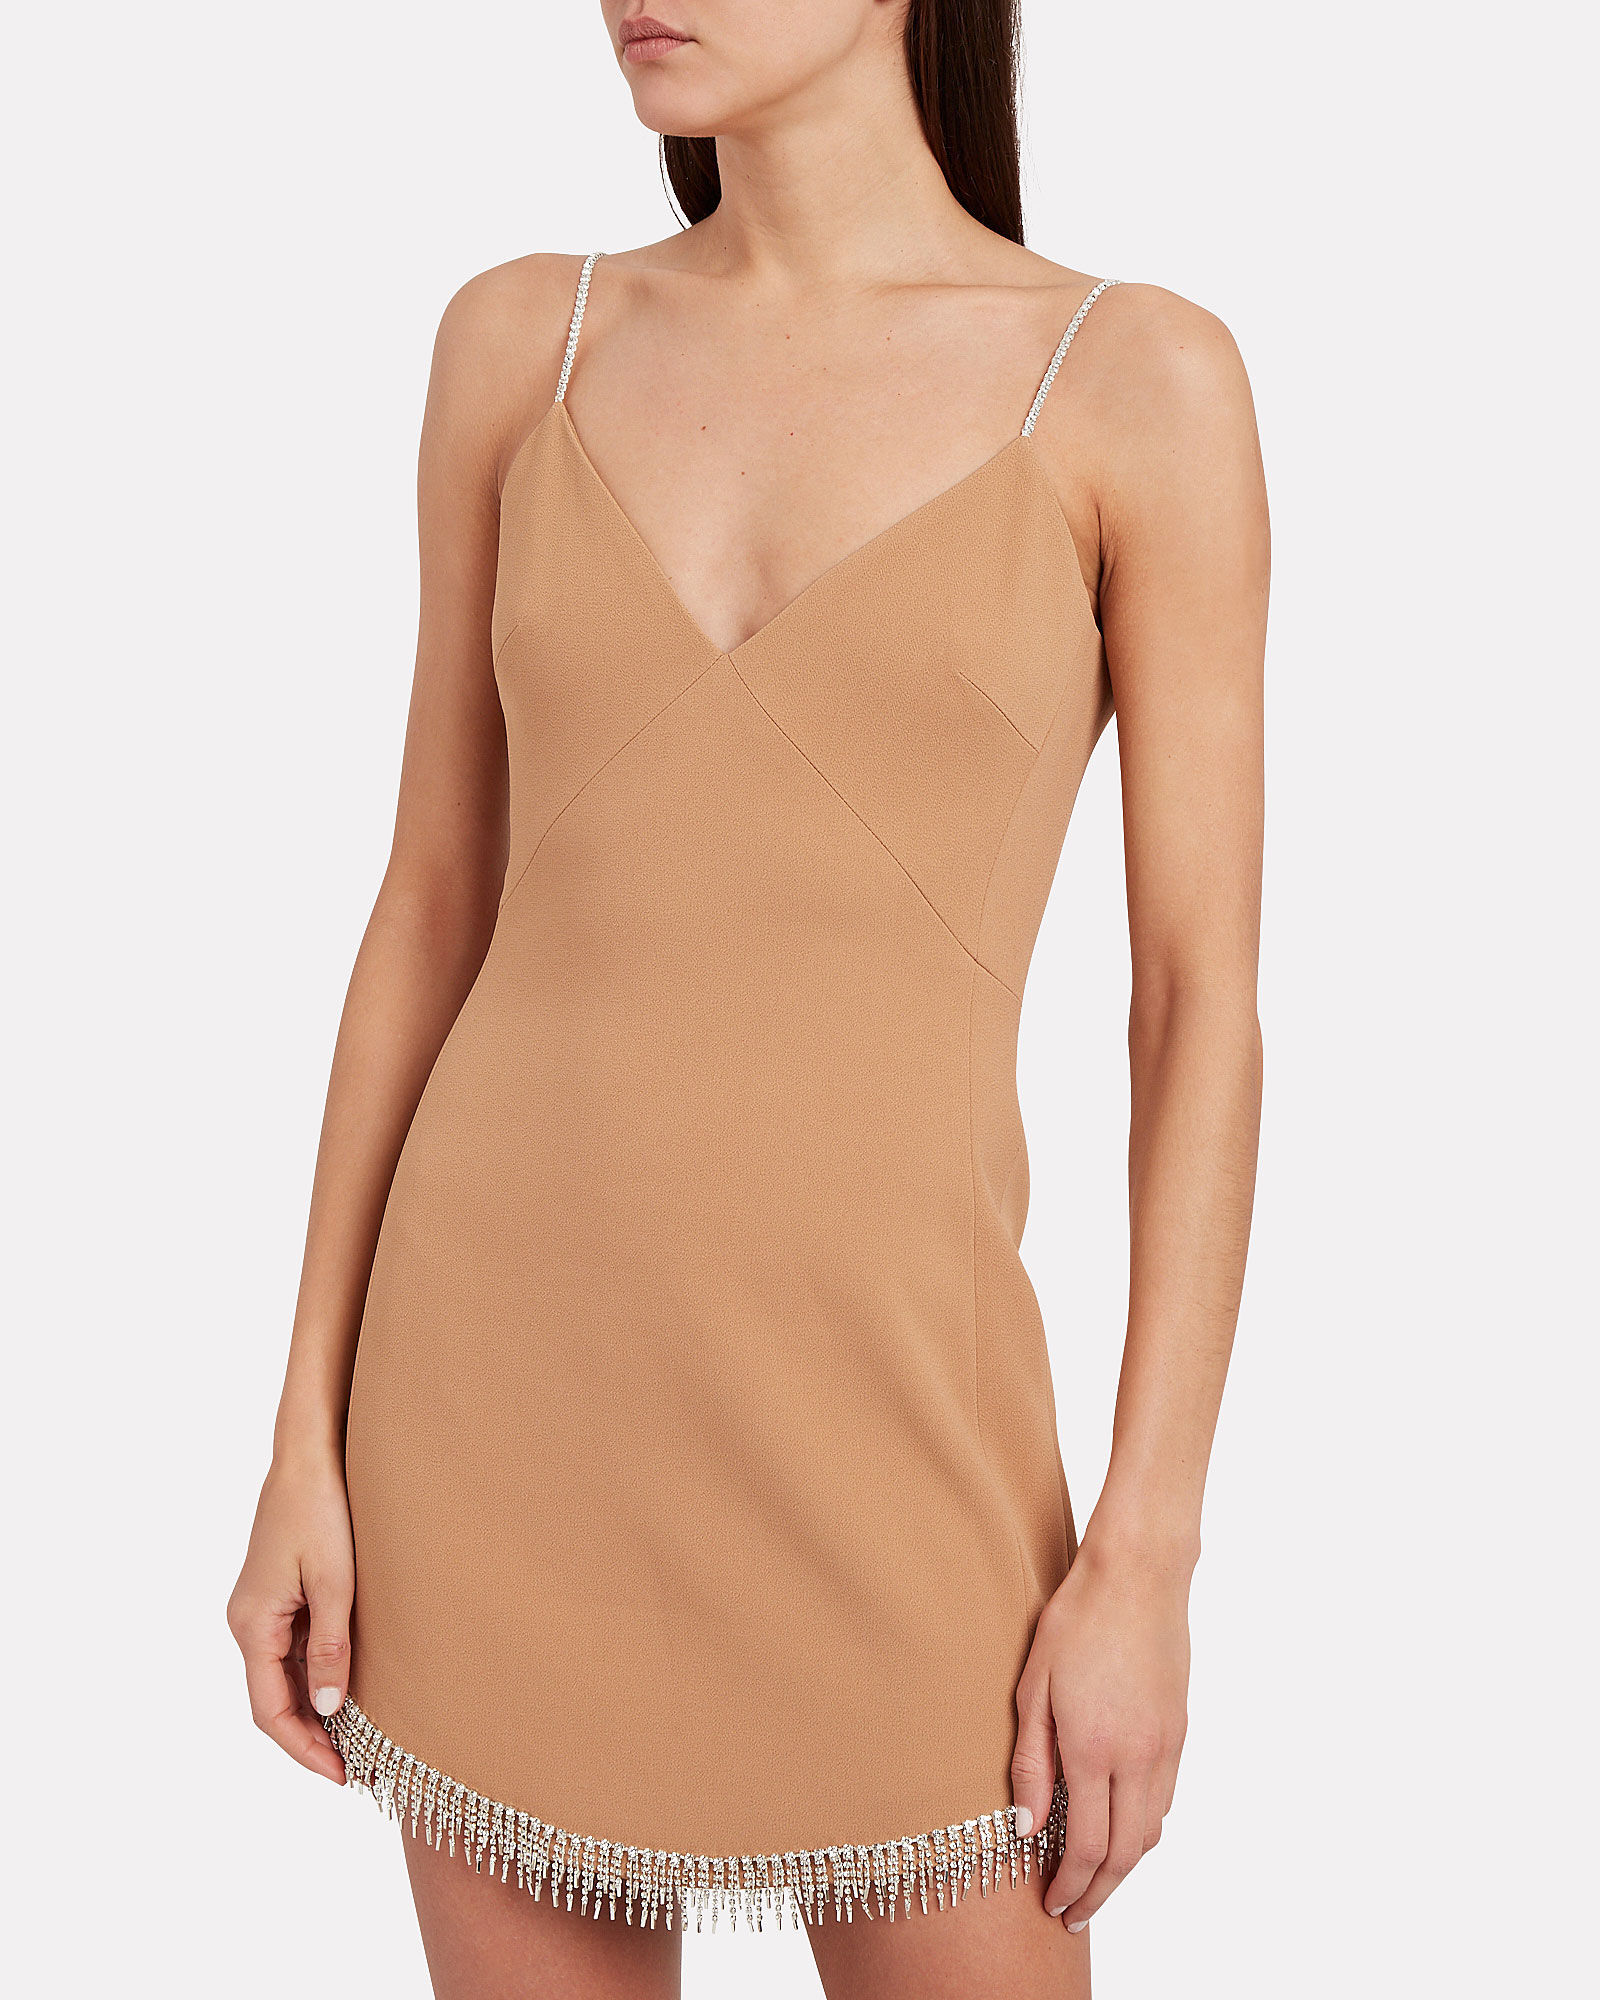 Embellished Crepe Mini Dress, BEIGE, hi-res